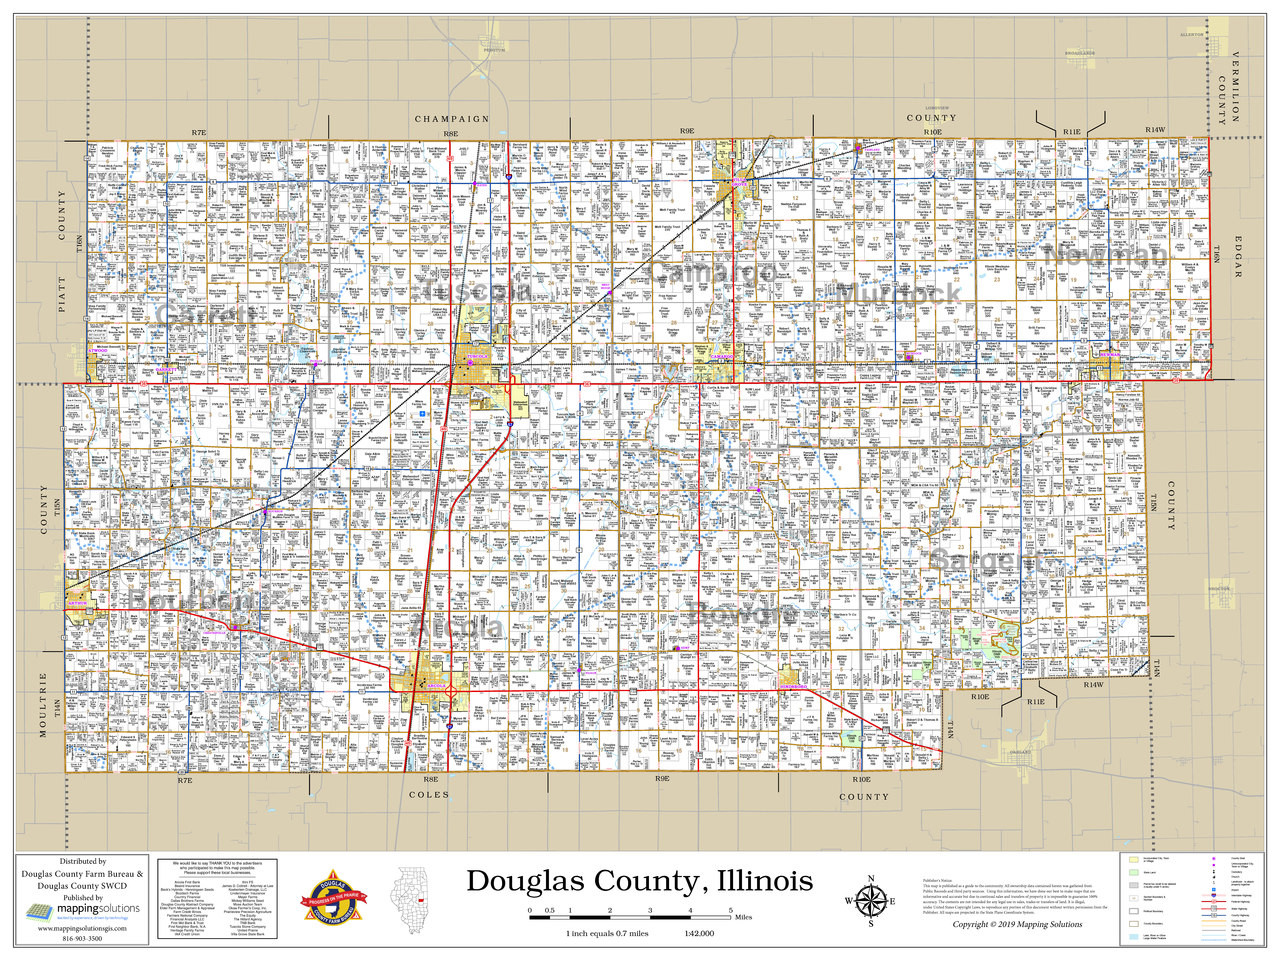 Douglas County Plat Map Douglas County Illinois 2019 Wall Map | Mapping Solutions